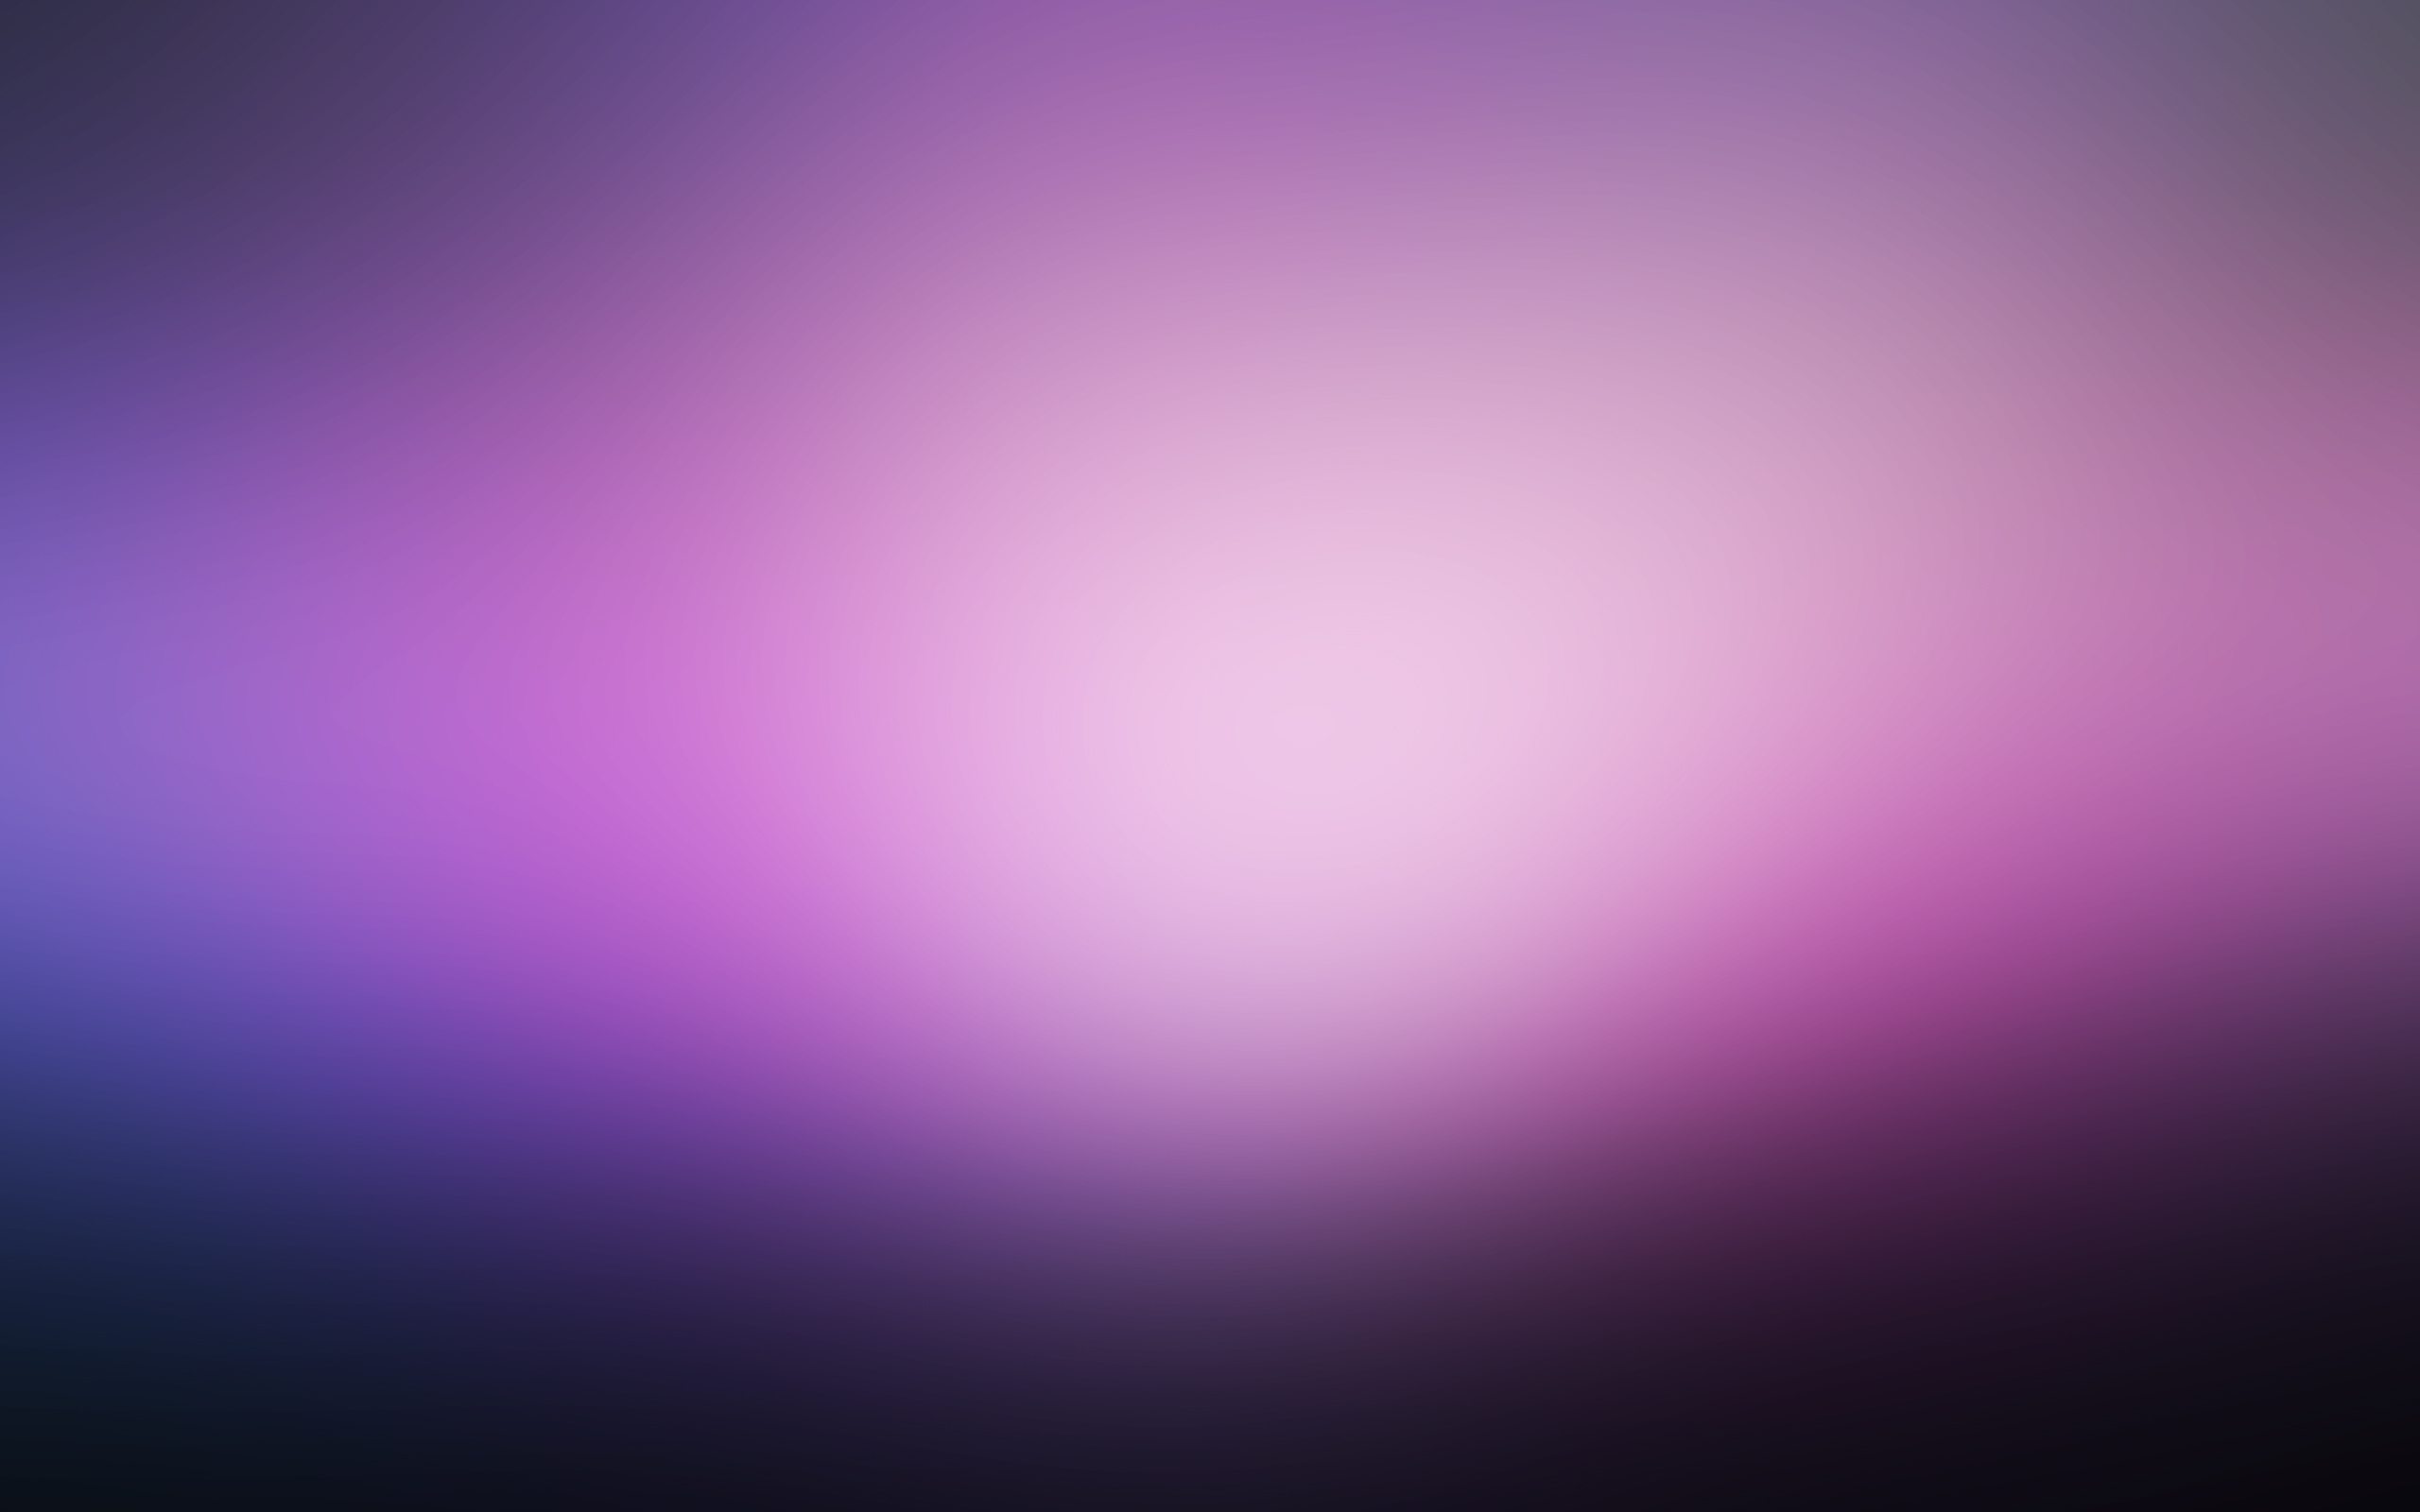 Purple blur wallpaper 26355 2560x1600 px for New nice images